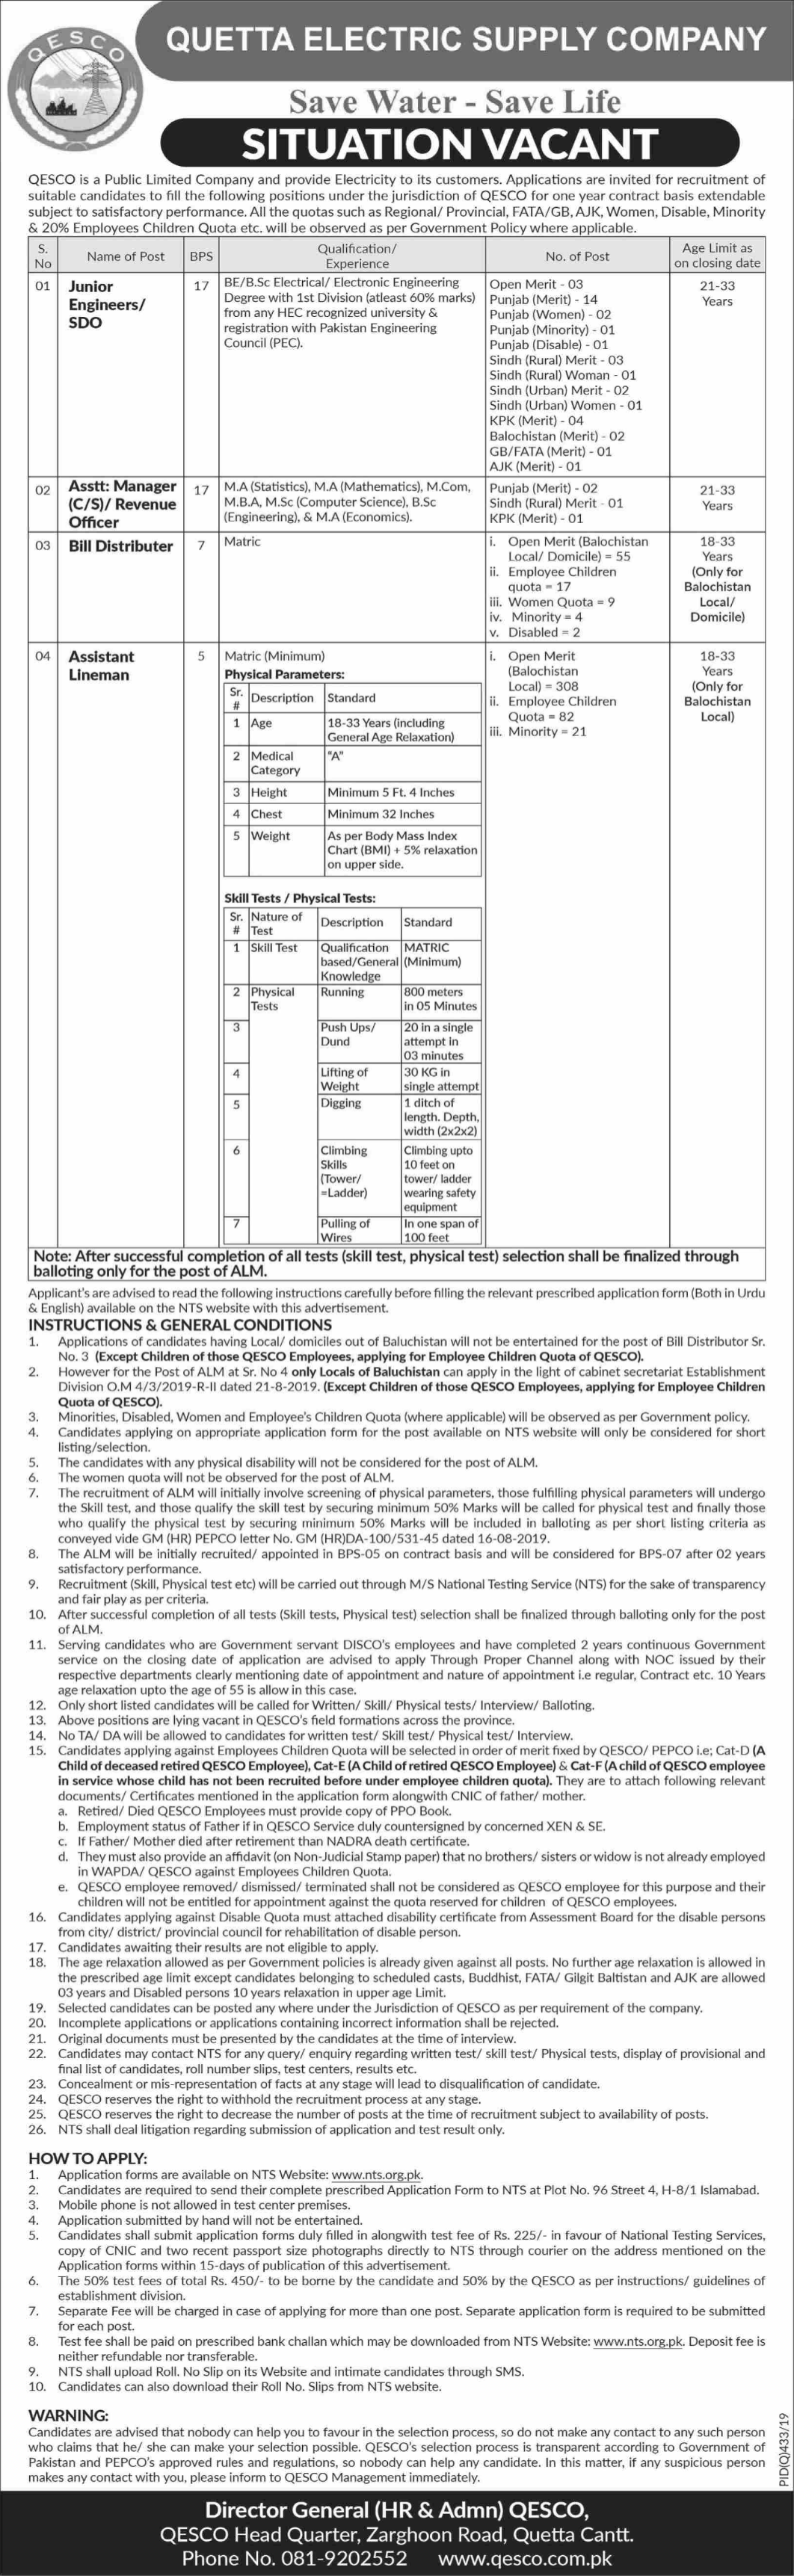 QESCO Jobs Quetta electric supply company Via NTS